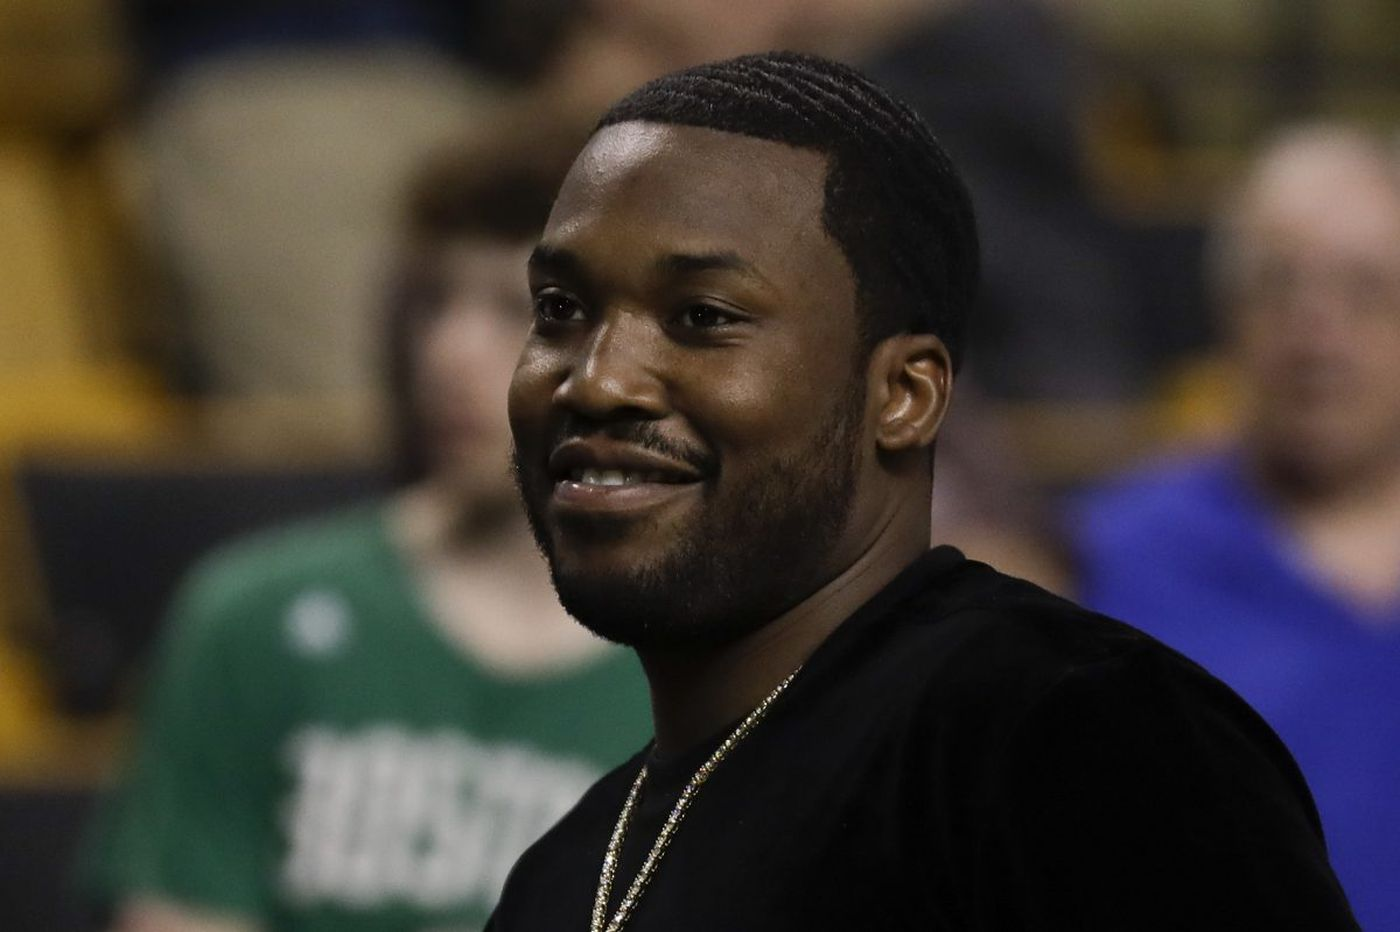 Meek Mill pulls out of visit to White House